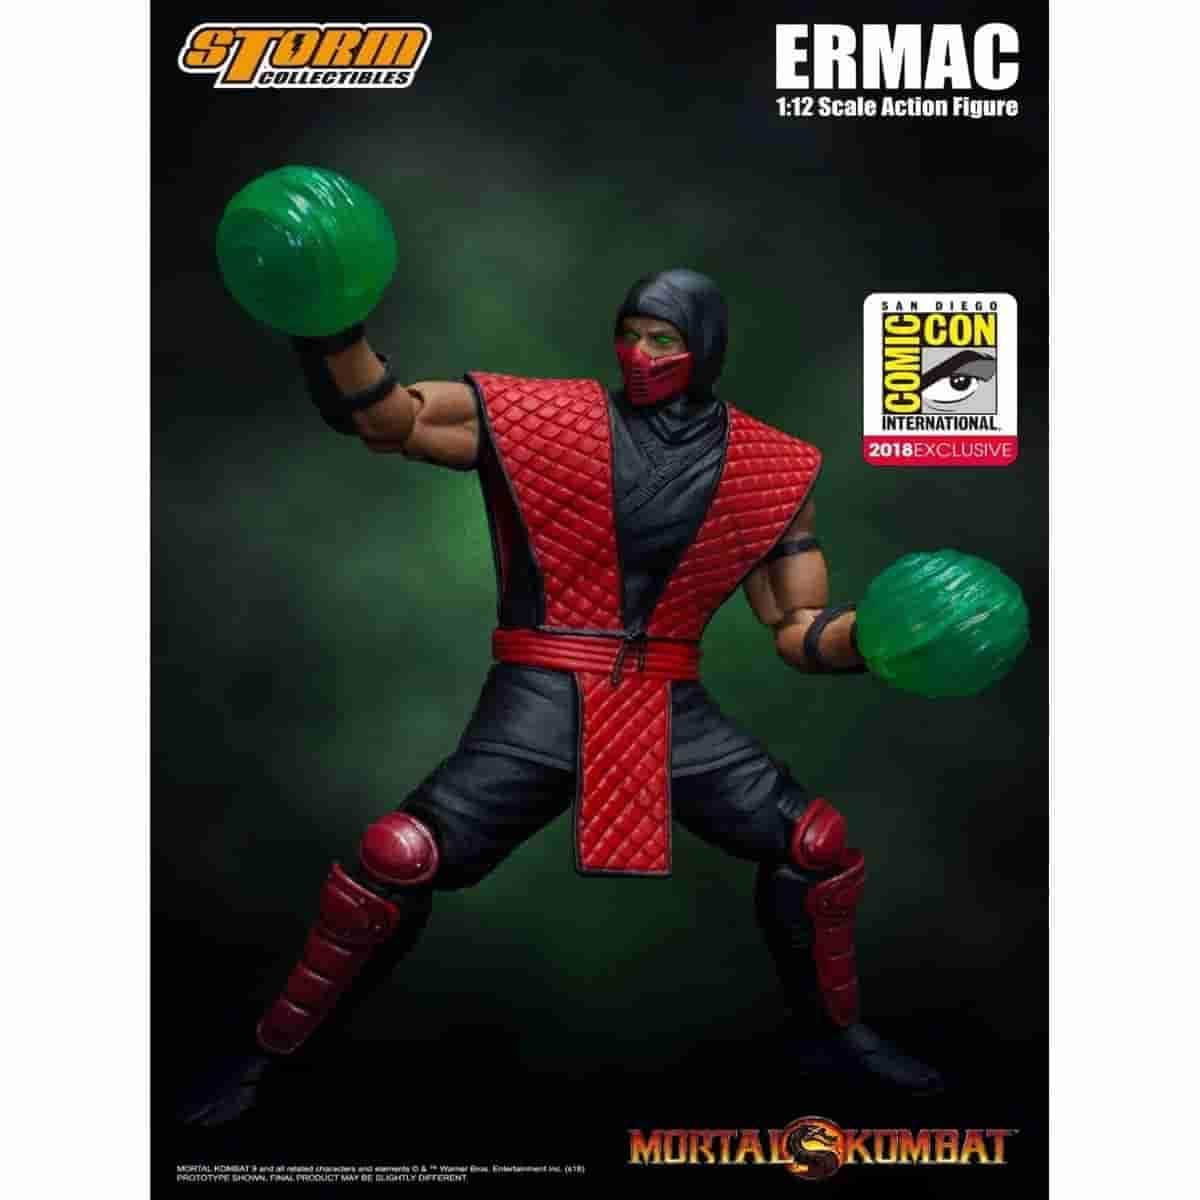 Ermac - Mortal Kombat 1:12 Scale Action Figure SDCC Exclusive Variant by Storm Collectibles